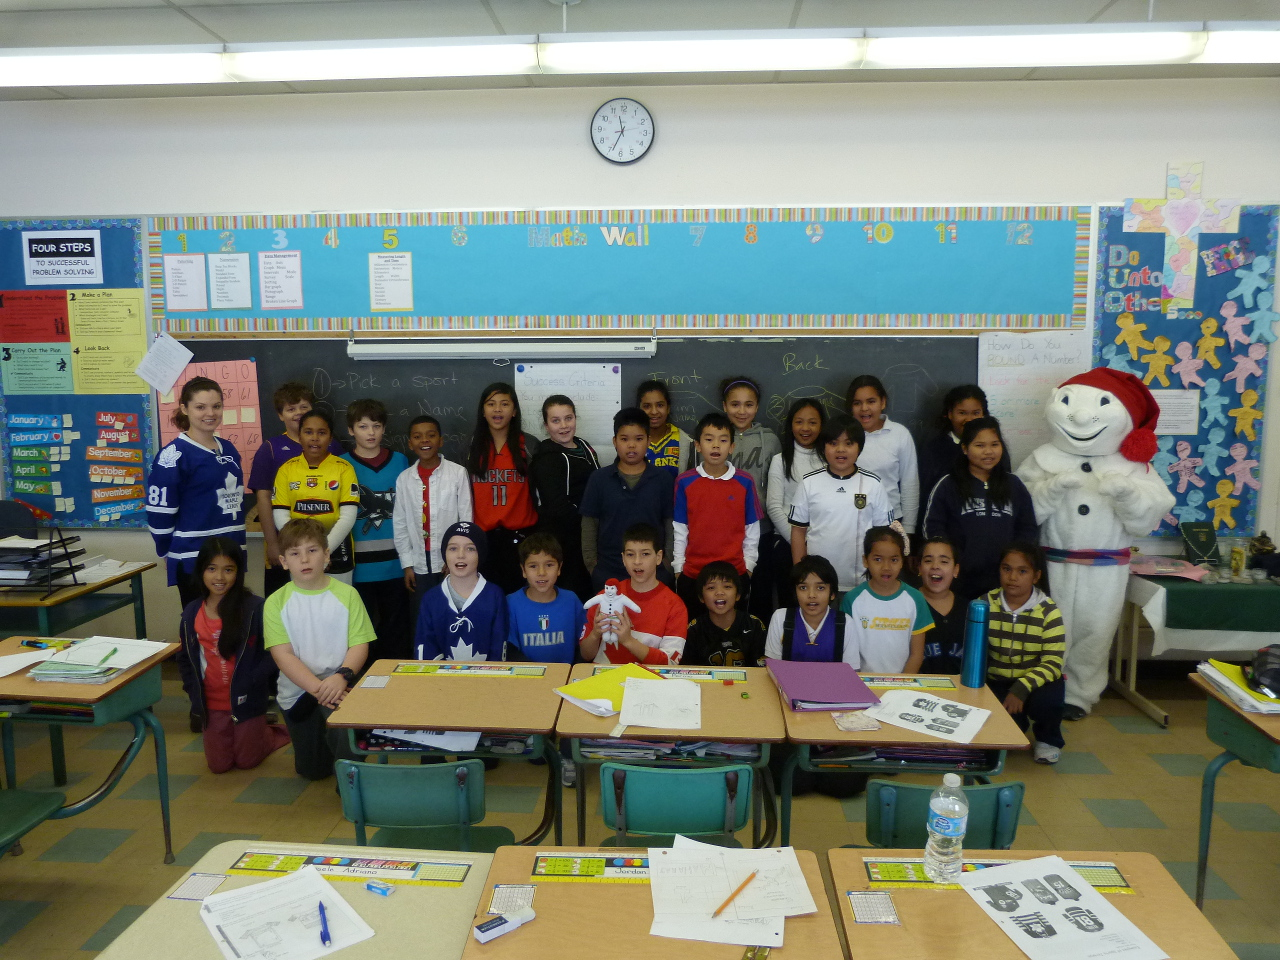 Bonhomme and students